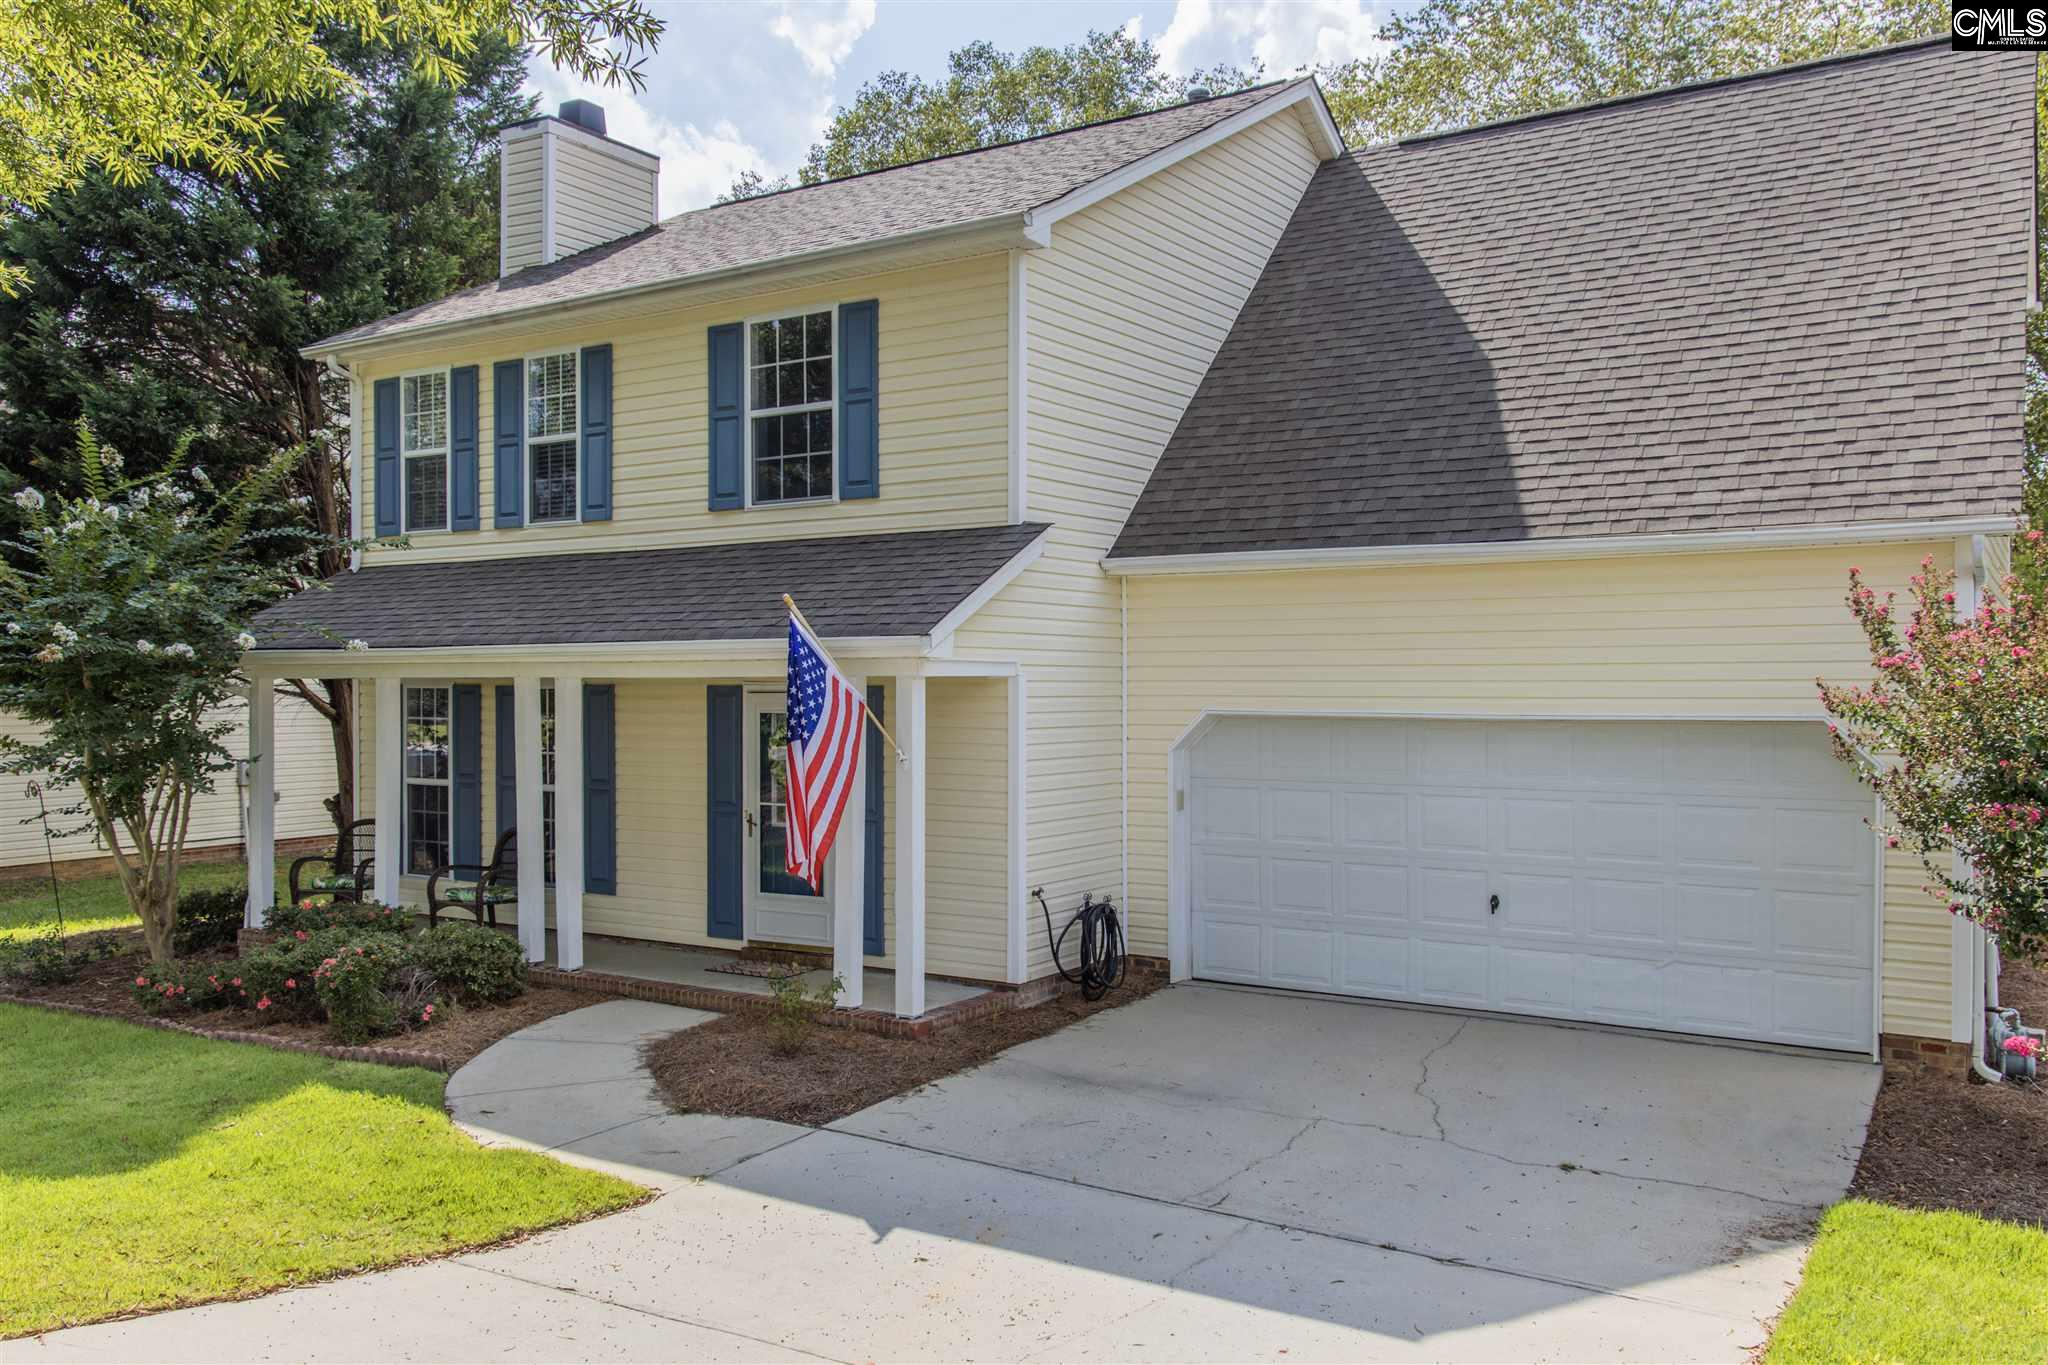 113 Bellhaven Lexington, SC 29072